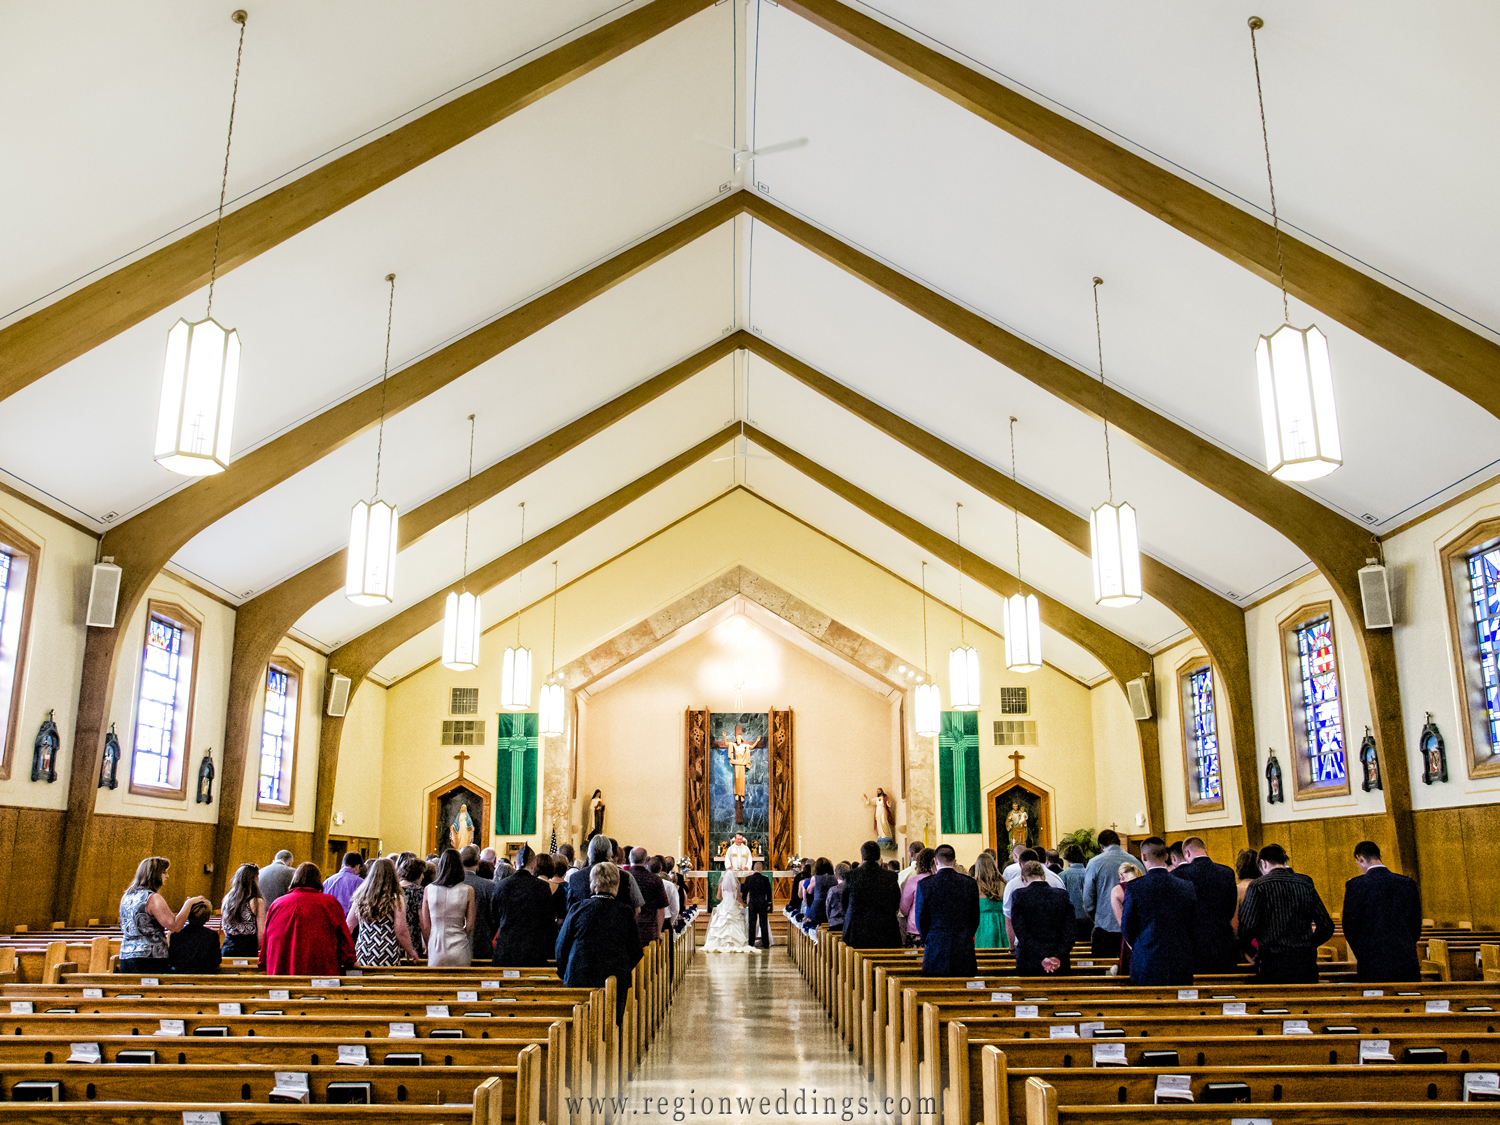 A wide angle view of a wedding ceremony at Saint Mary's Church in Griffith, Indiana.